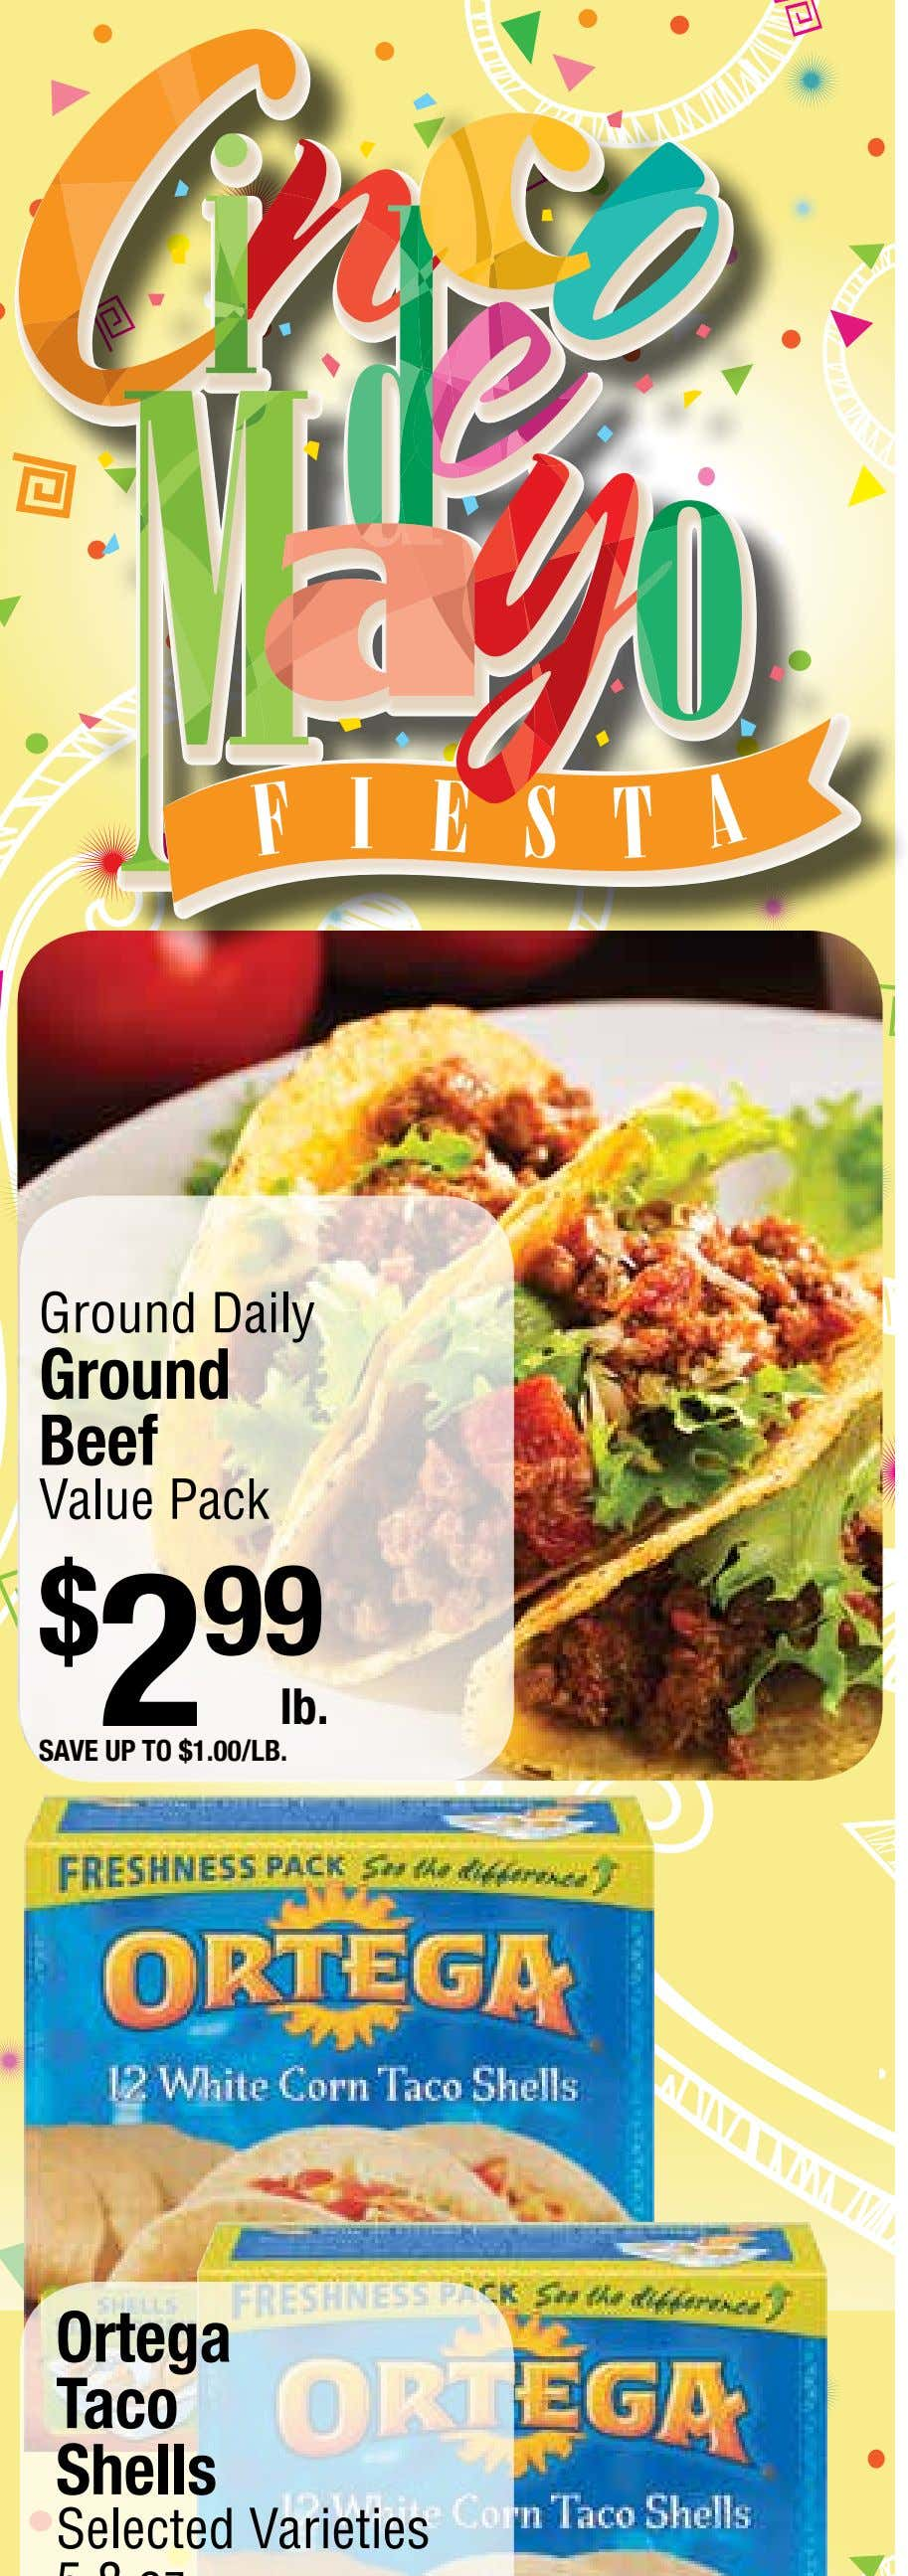 Ground Daily Ground Beef Value Pack $ 2 99 lb. save up to $1.00/lb.